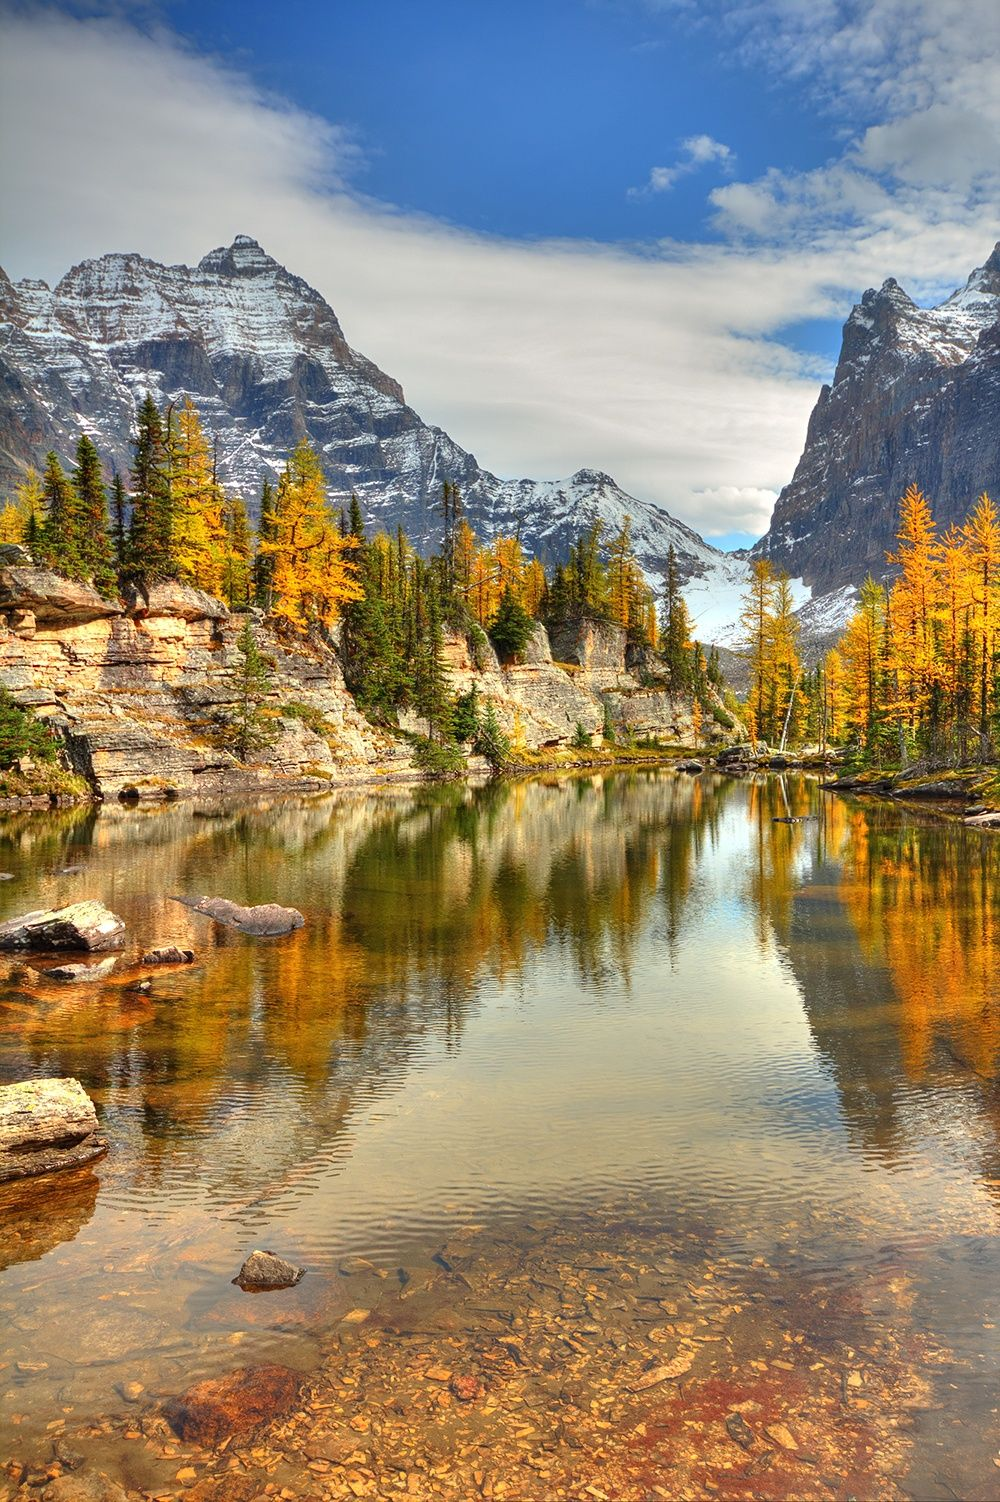 This photograph was taken in Yoho National Park, BC, Canada.